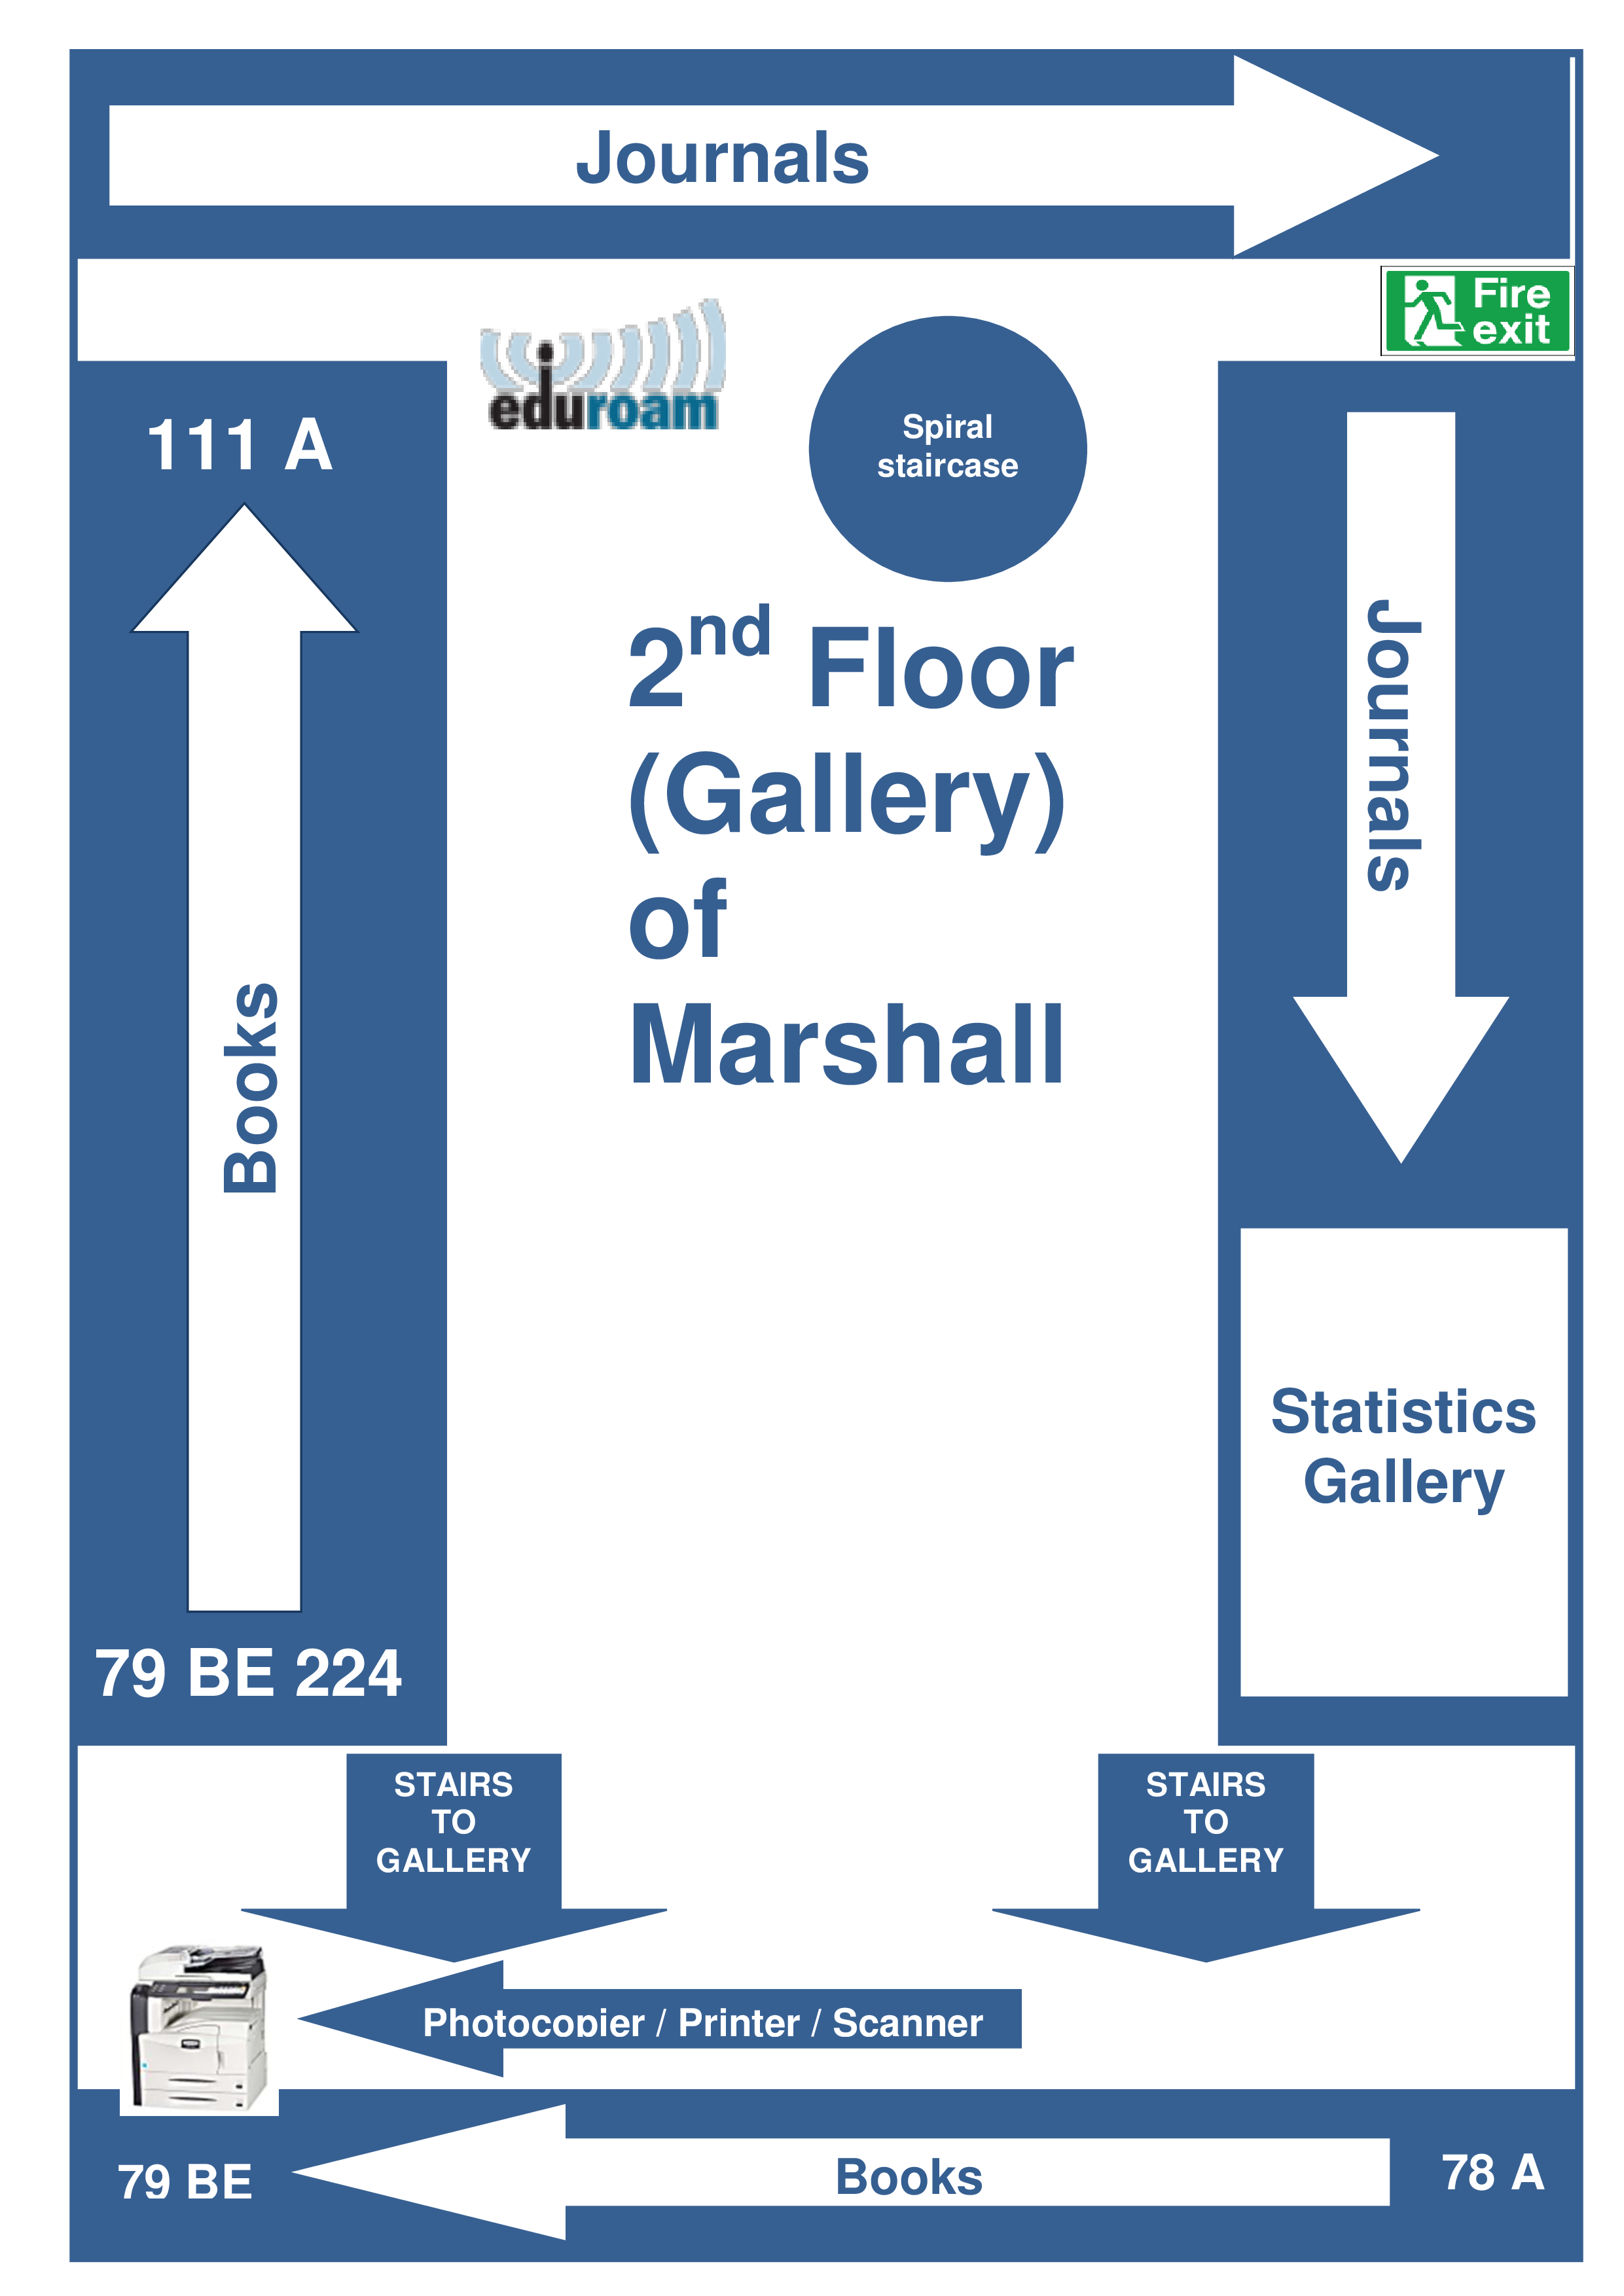 Gallery / 2nd floor of Marshall Library plan